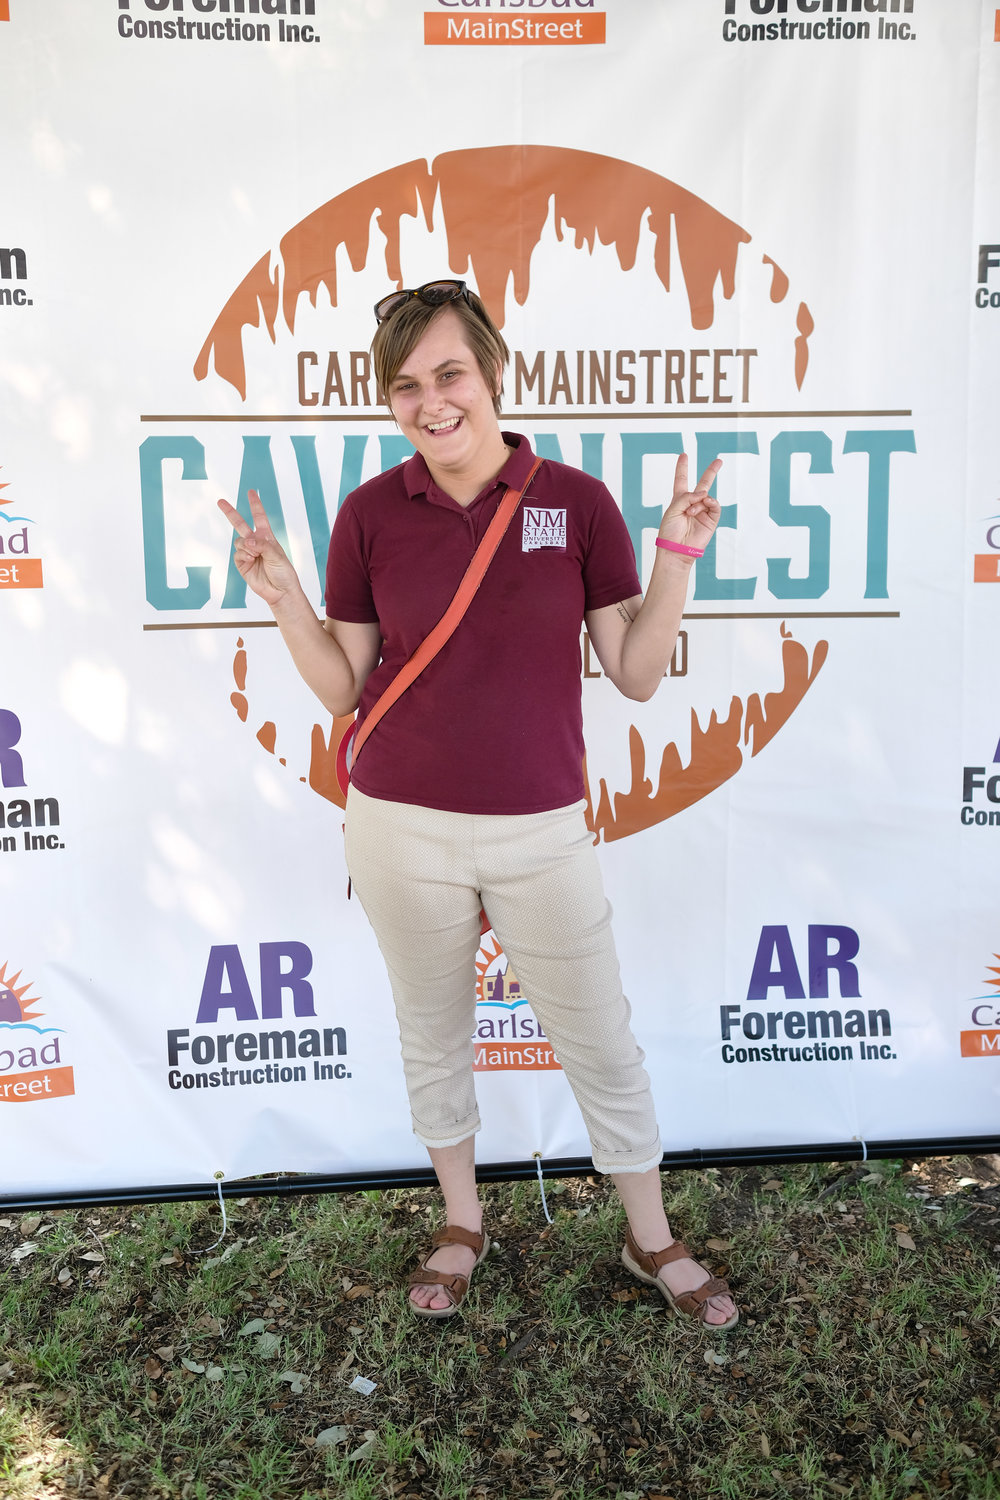 Cavenfest_june2018_46.jpg